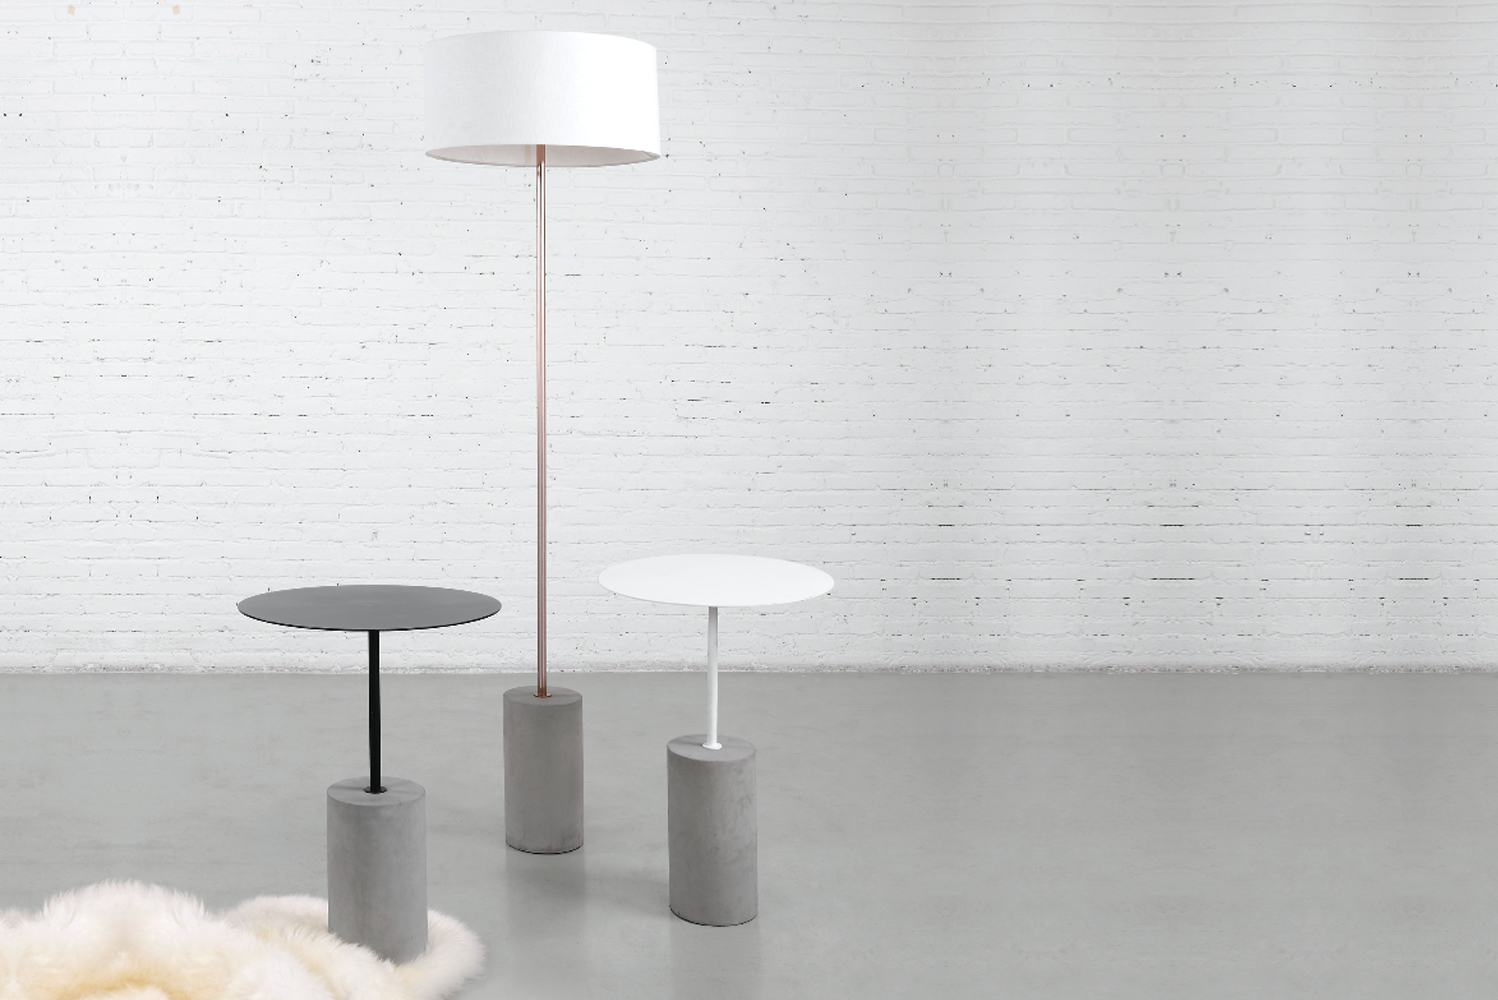 m.a.d. furniture design launched the Pier occasional table.